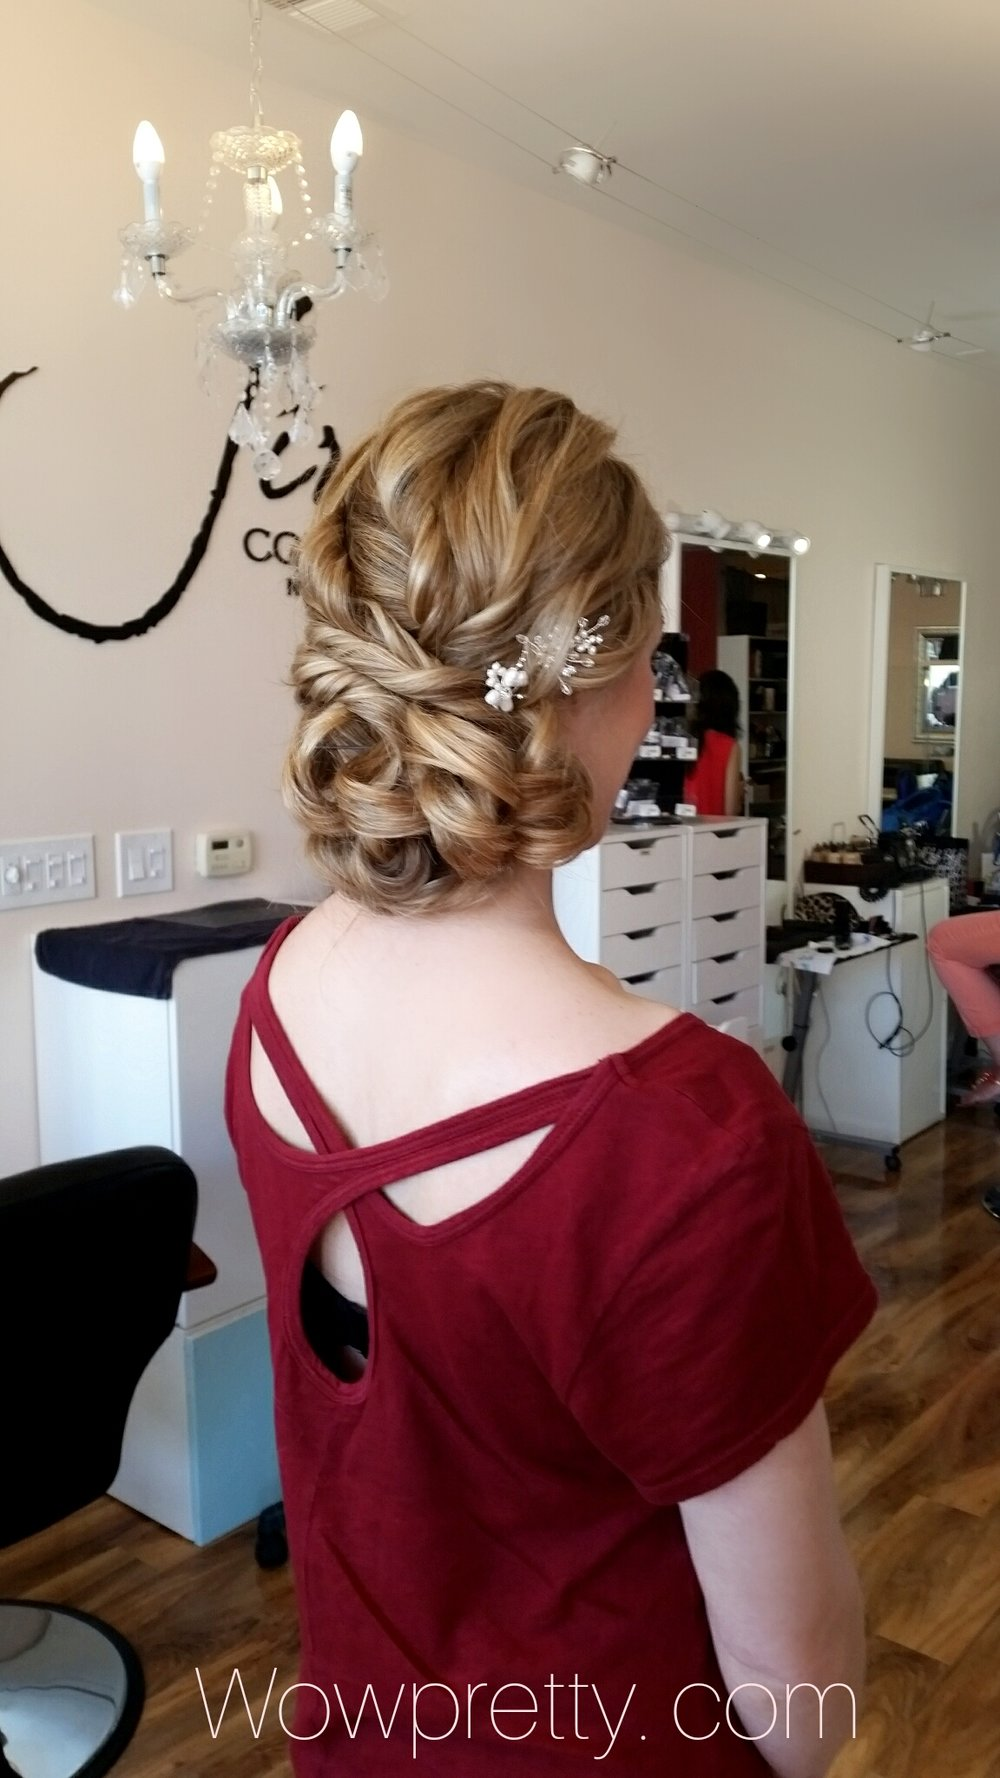 wedding-trial-makeup-and-hair_26646081270_o.jpg